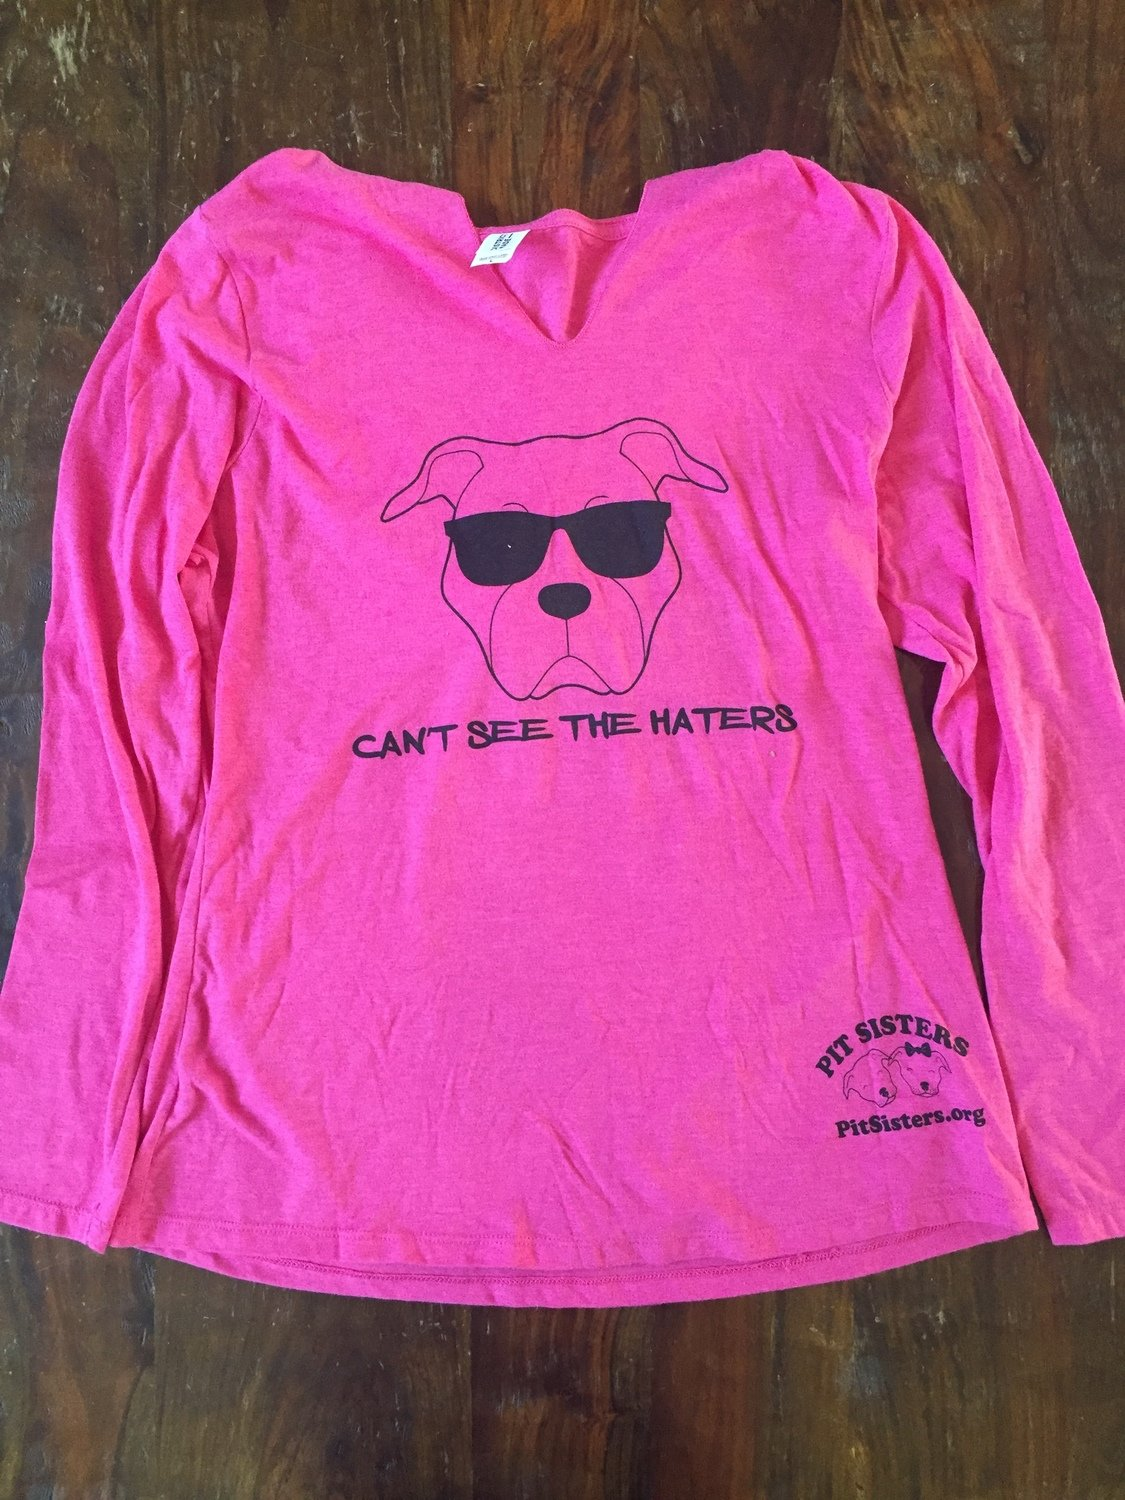 Long Sleeved, V-neck, Hoodie, Pink, Can't See the Haters, Medium